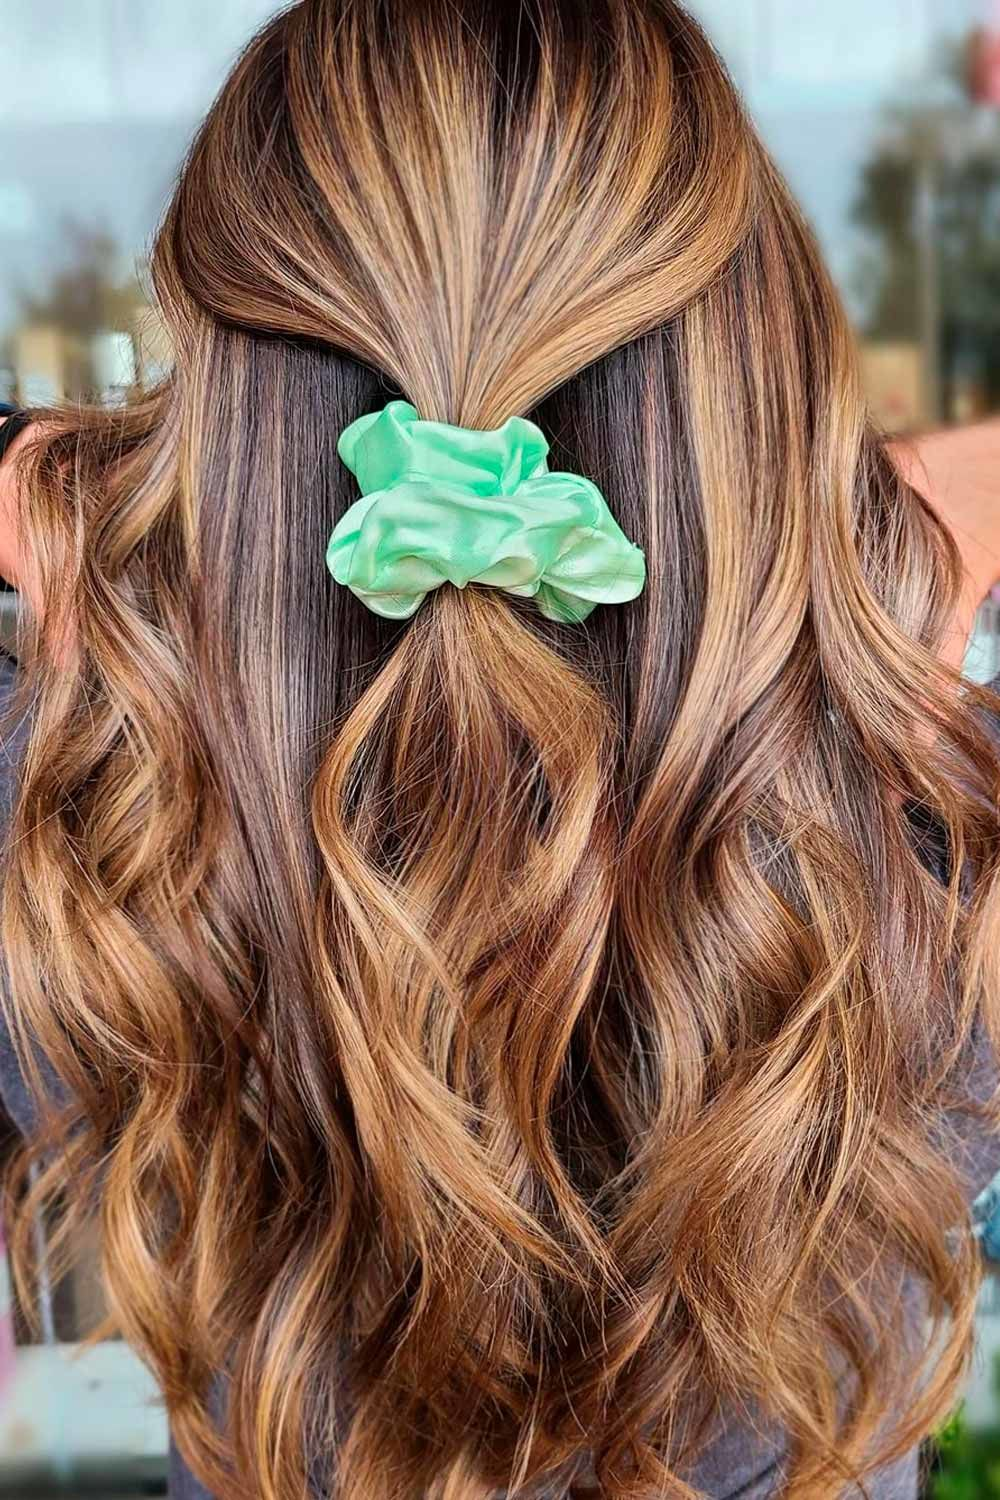 Half Up Hairstyle, best hairstyles for heart shaped face, best hairstyle for heart shaped face